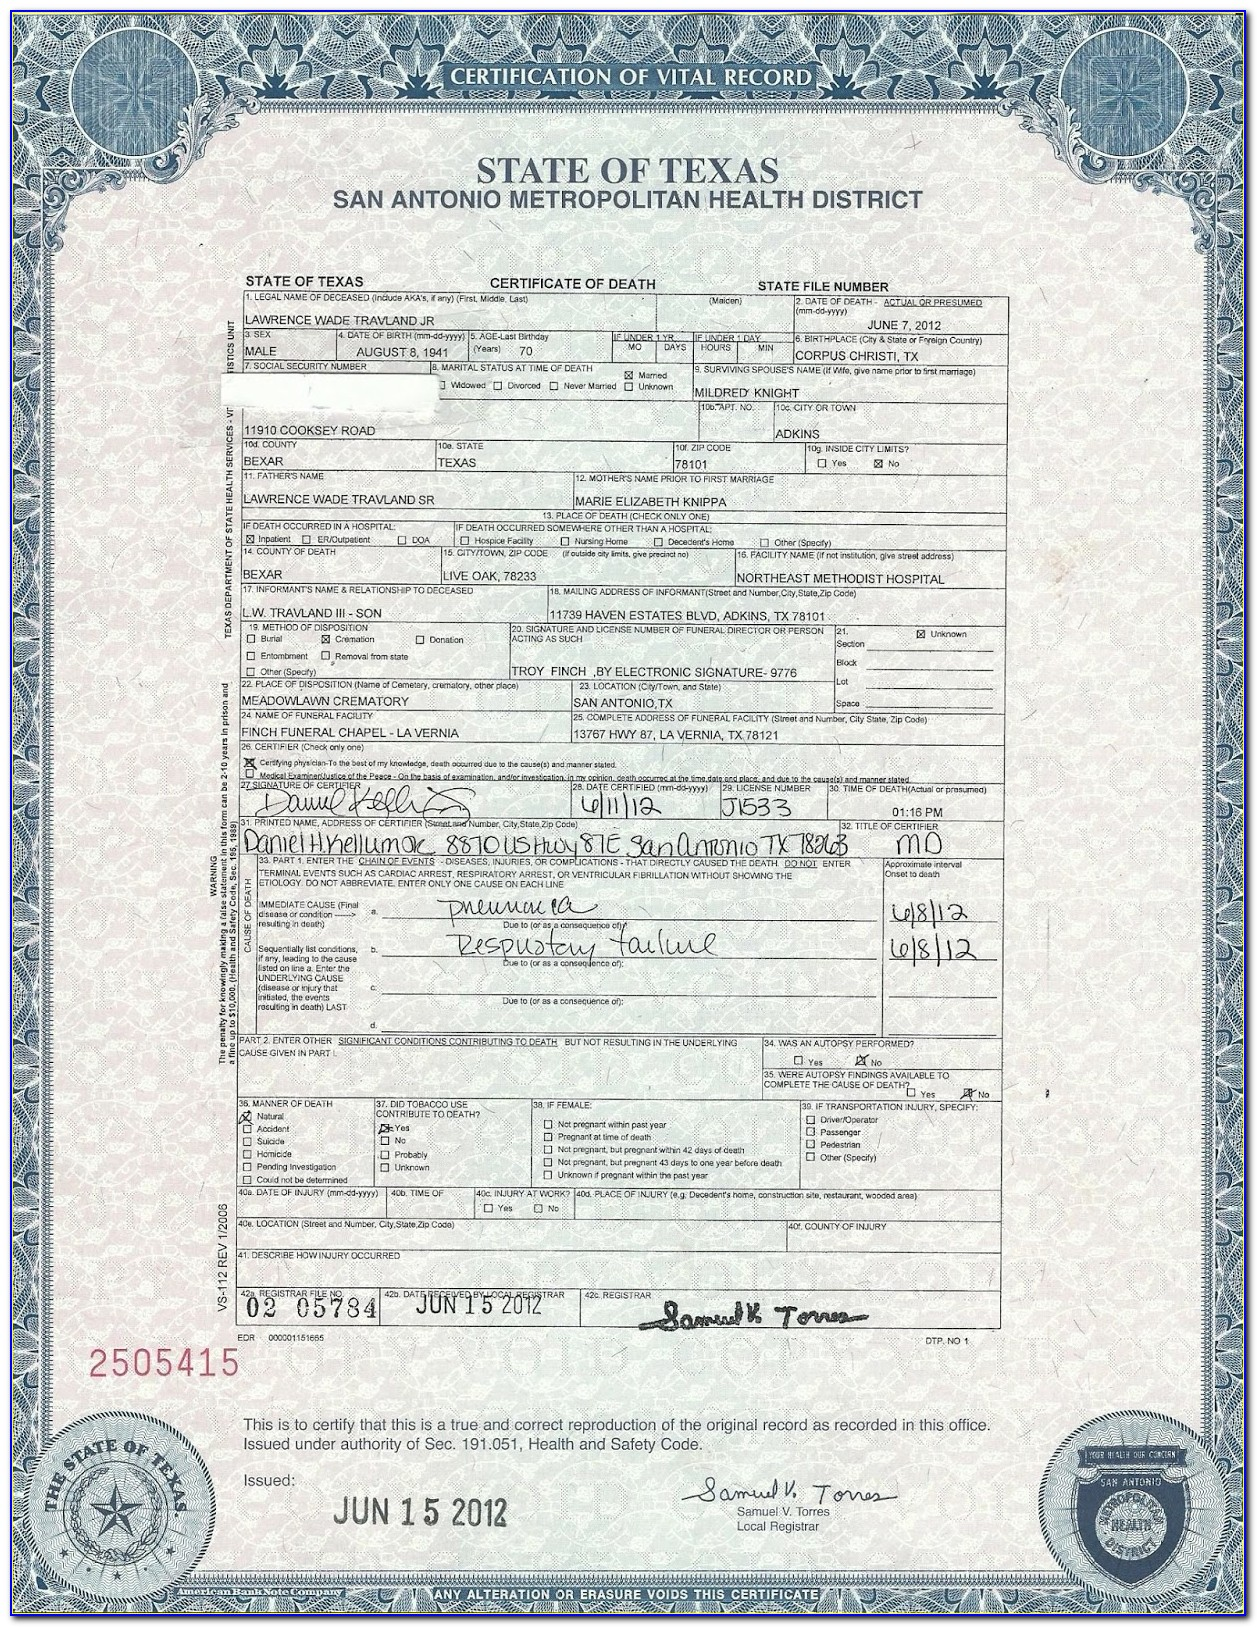 Texas Birth Certificate Long Form